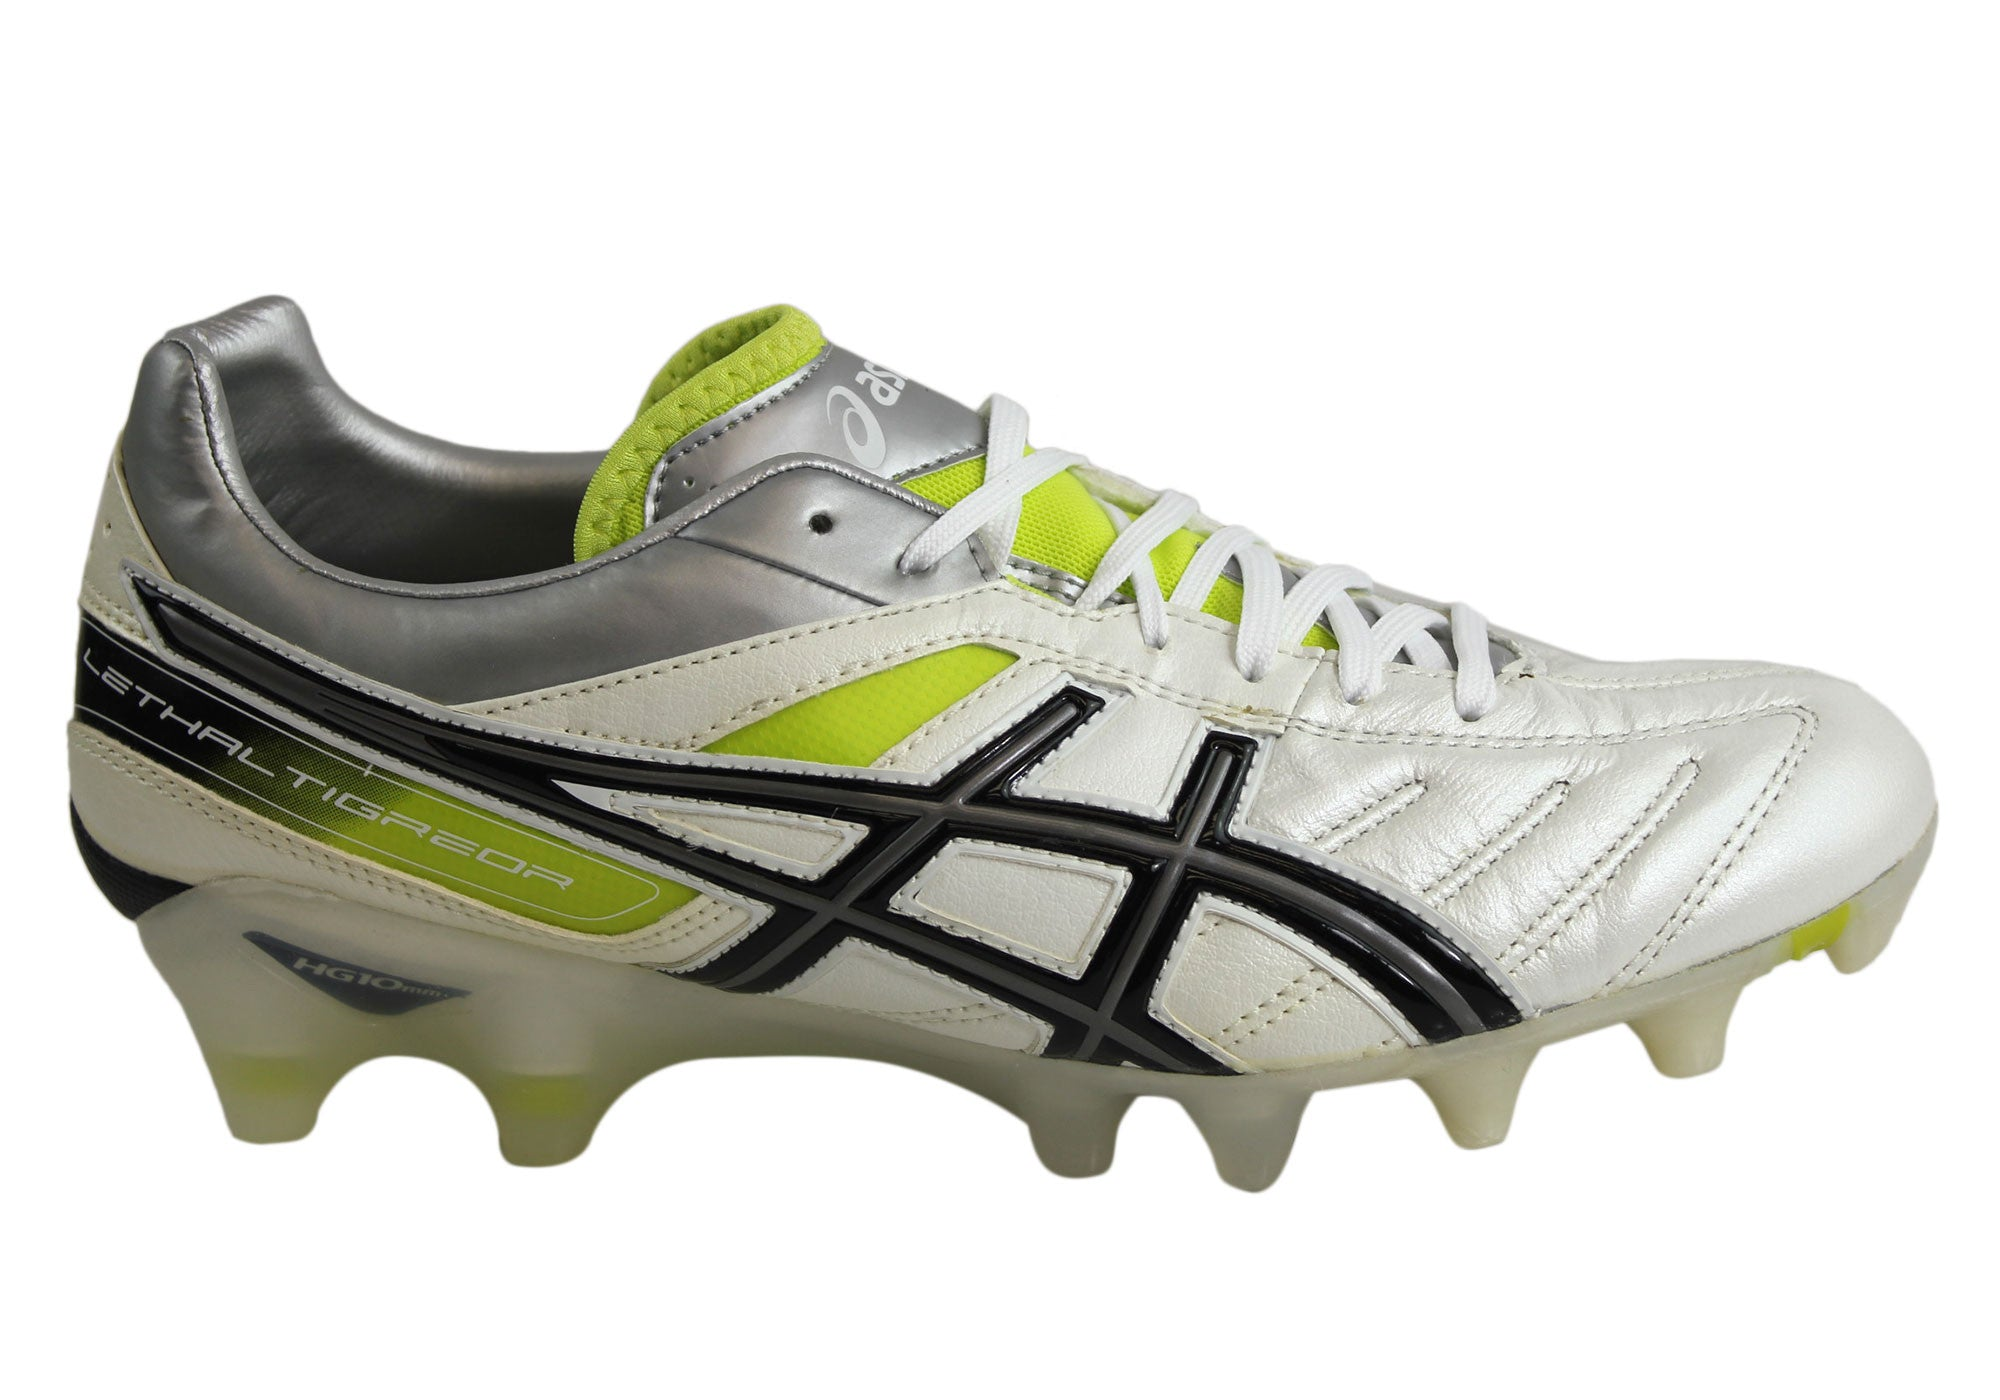 5ee255de9c6 Asics Lethal Tigreor 4 It Mens Leather Football Soccer Boots Cleats .